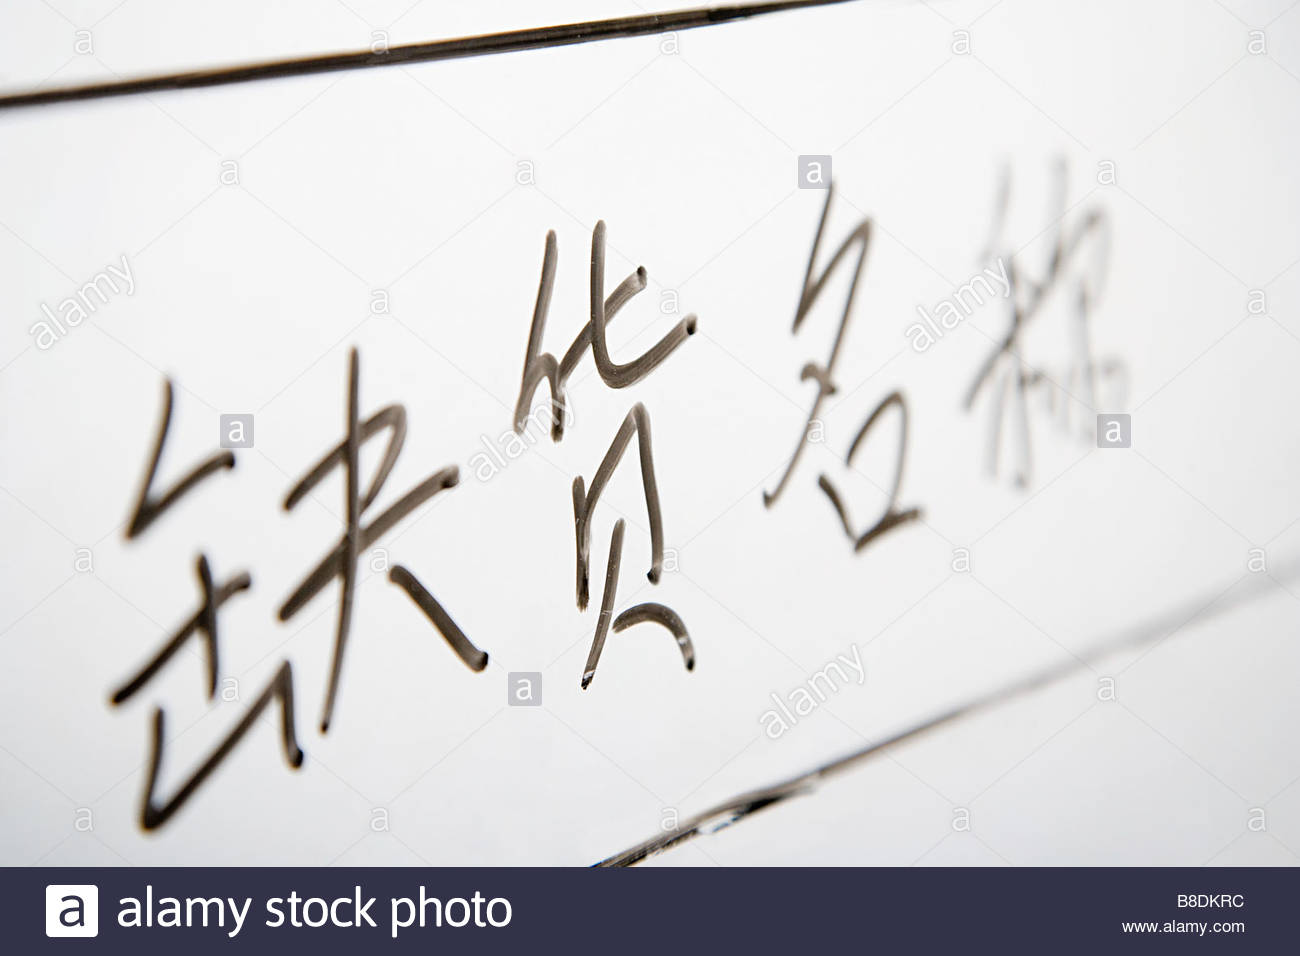 Chinese characters - Stock Image